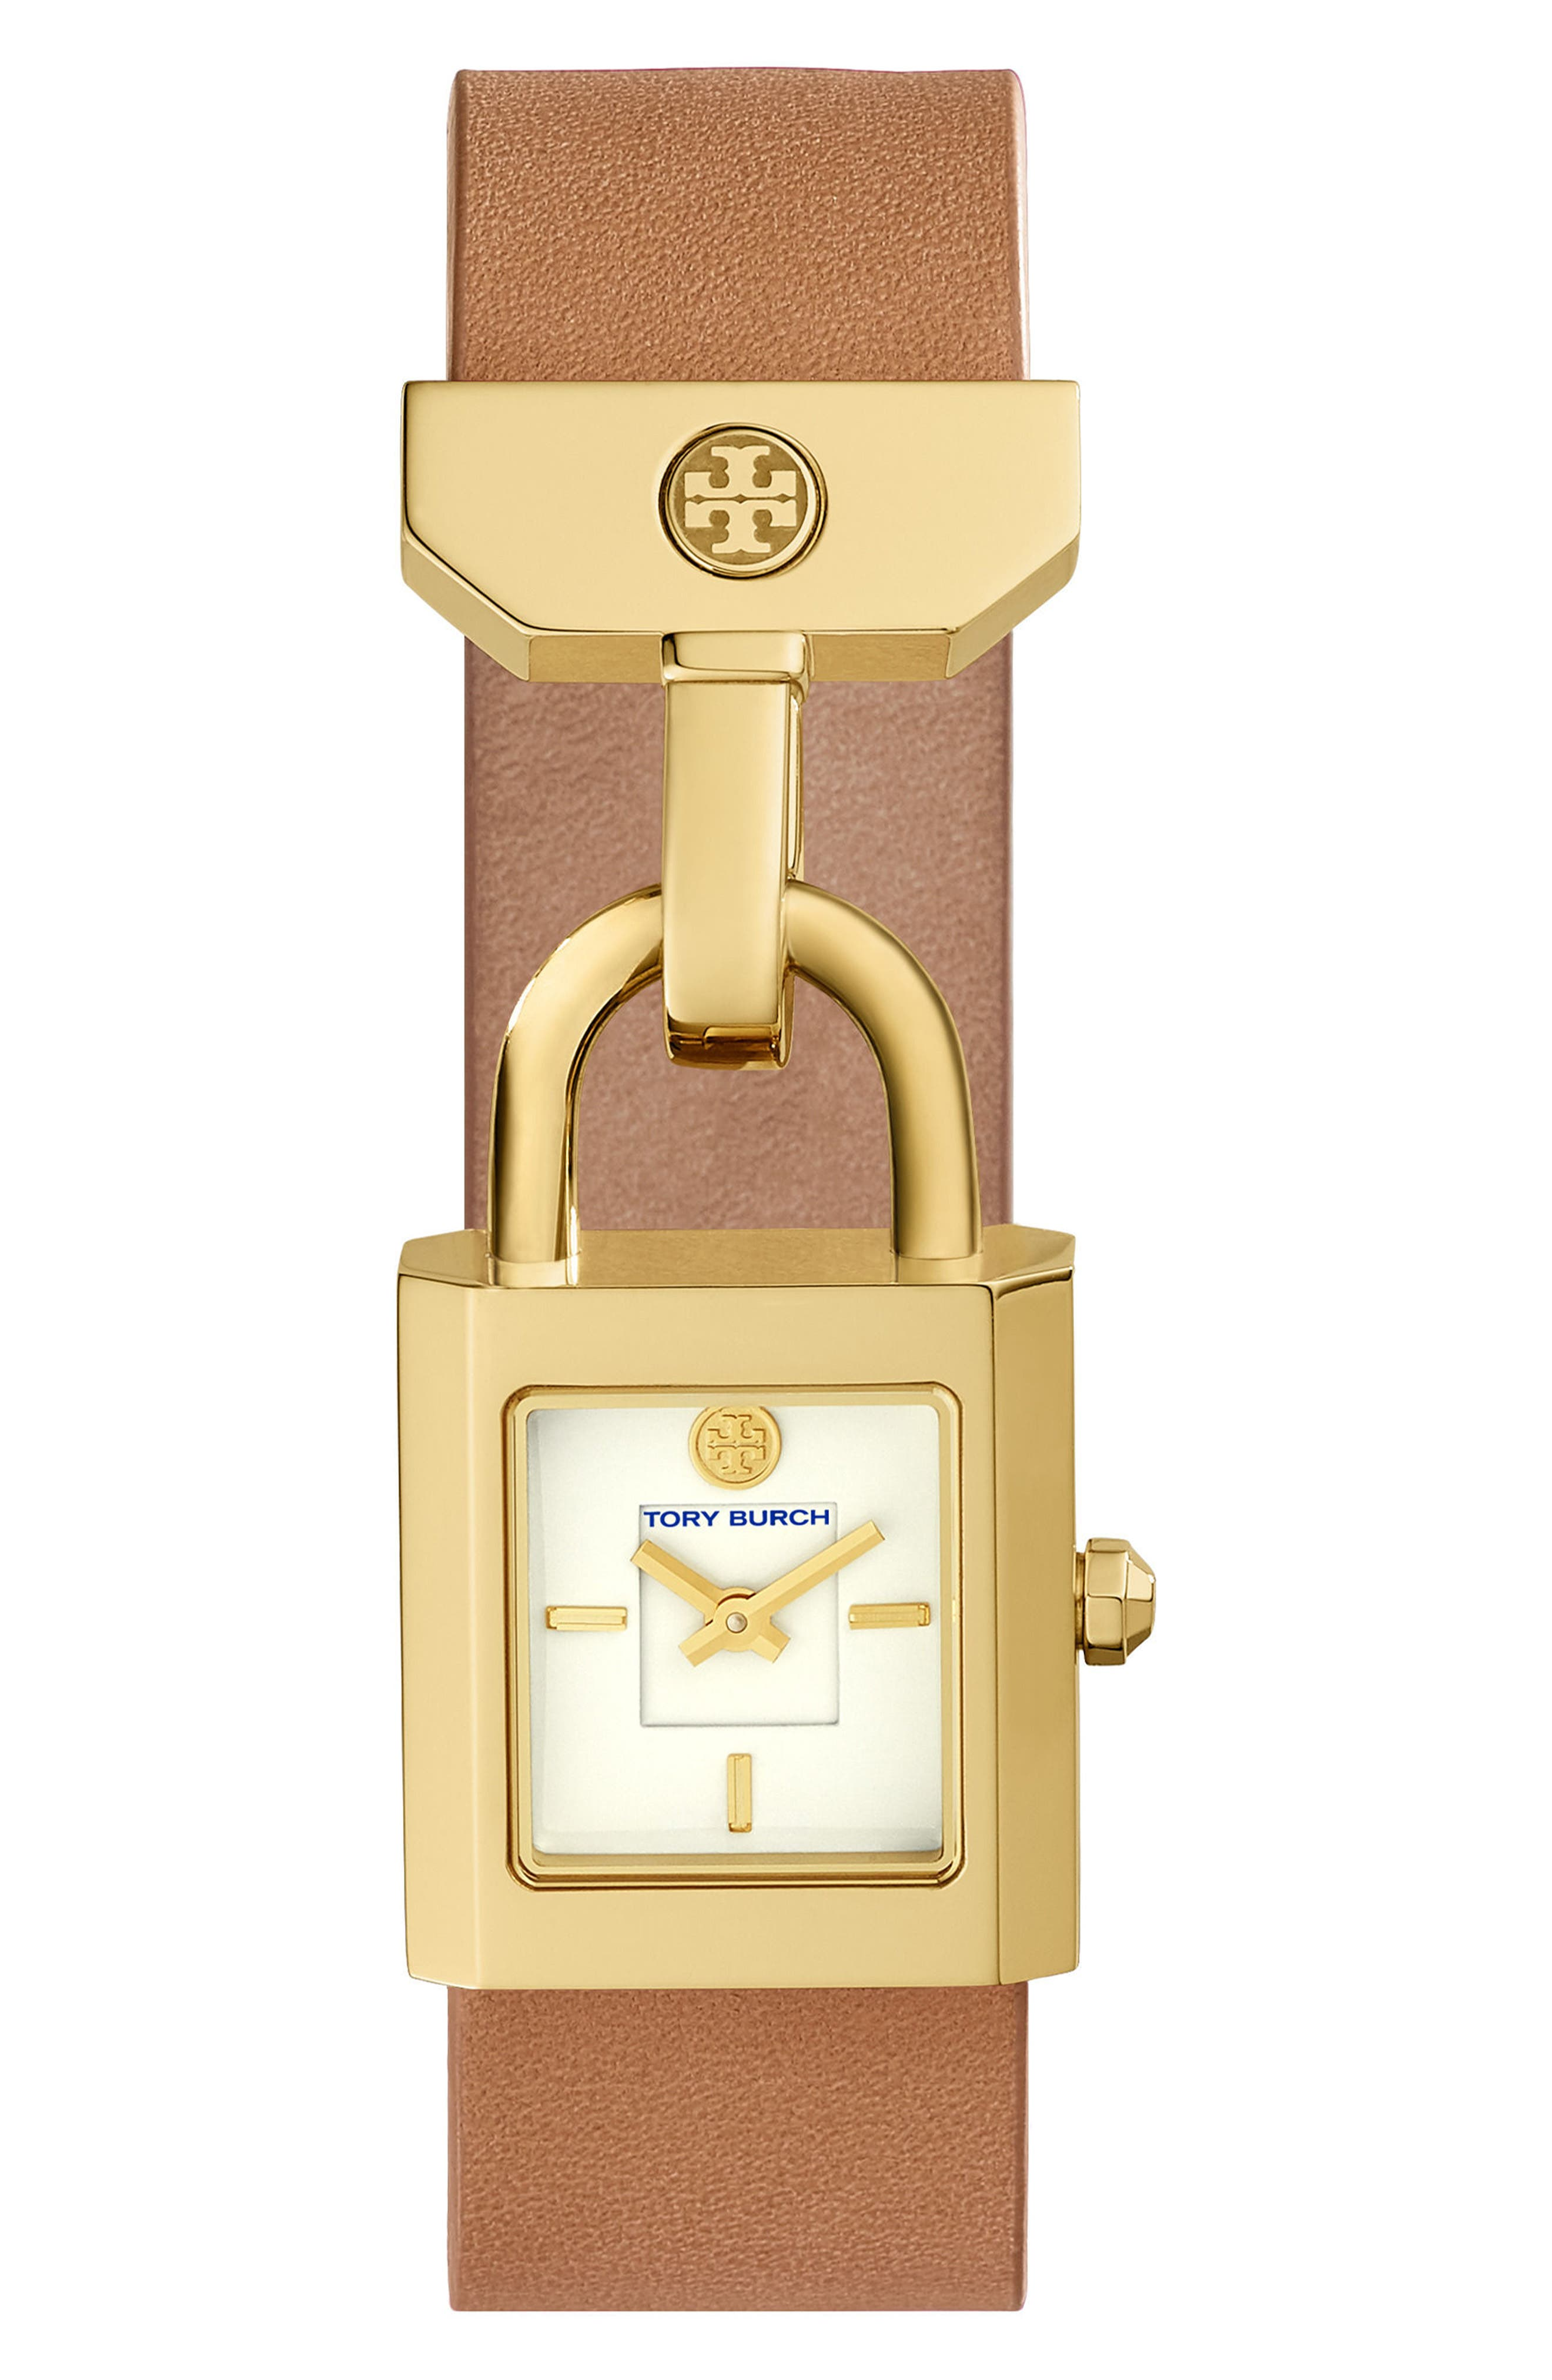 Main Image - Tory Burch Surrey Leather Strap Watch, 22mm x 23.5mm